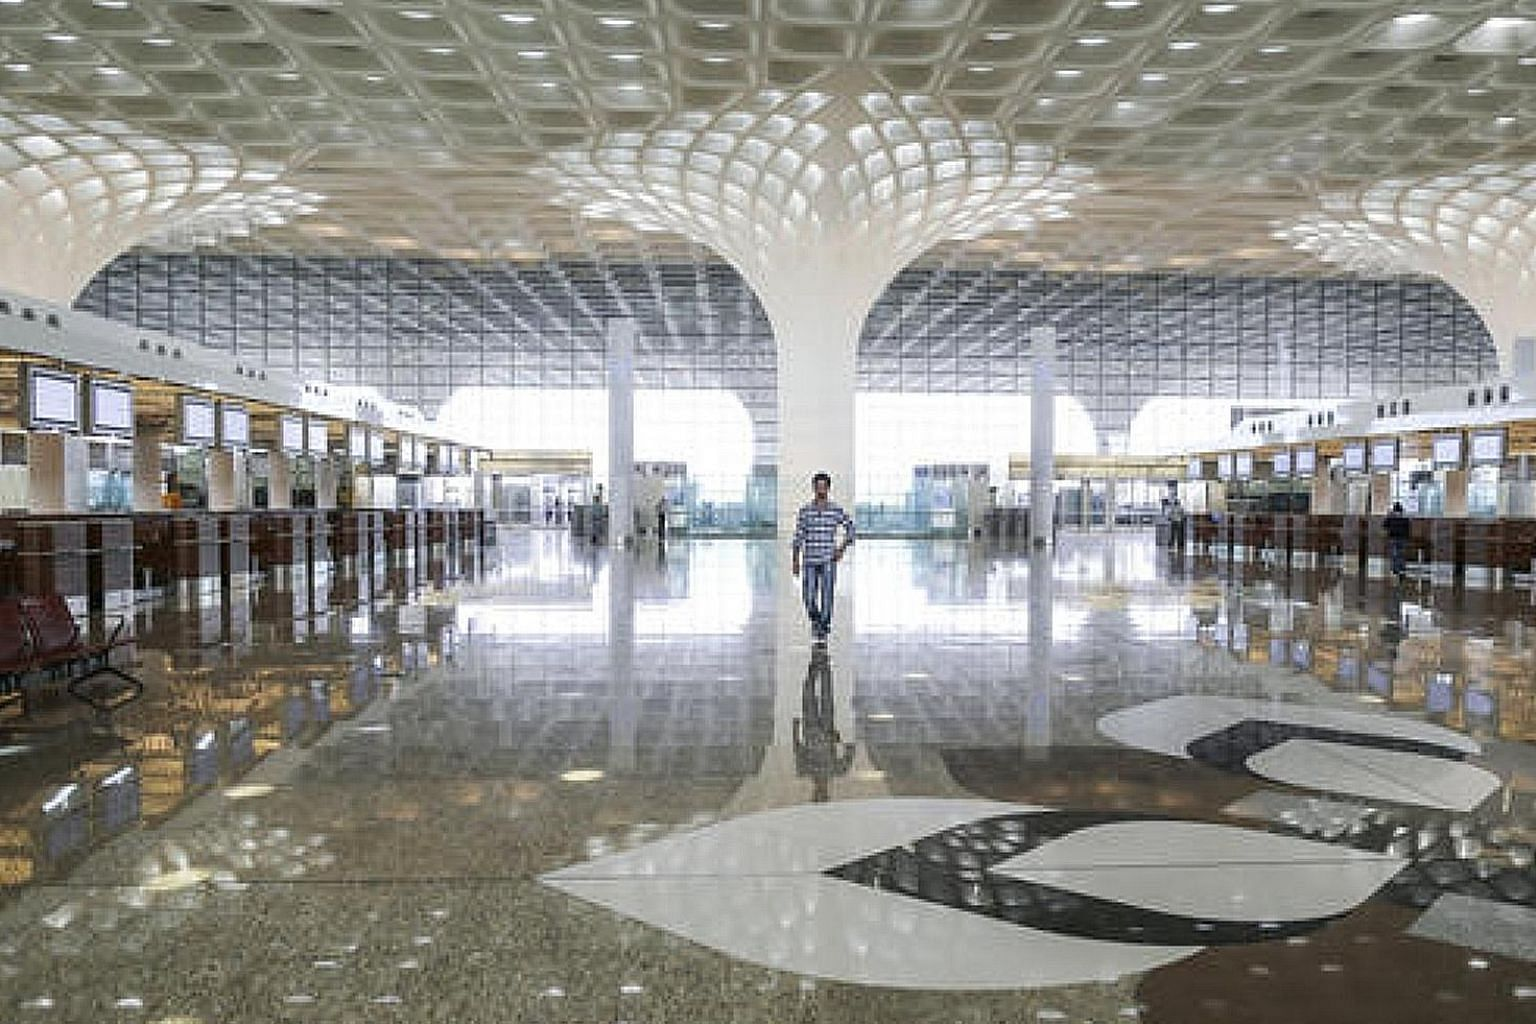 Mumbai's Chhatrapati Shivaji International Airport's Terminal 2. Mumbai is expected to have a second airport by September 2021.